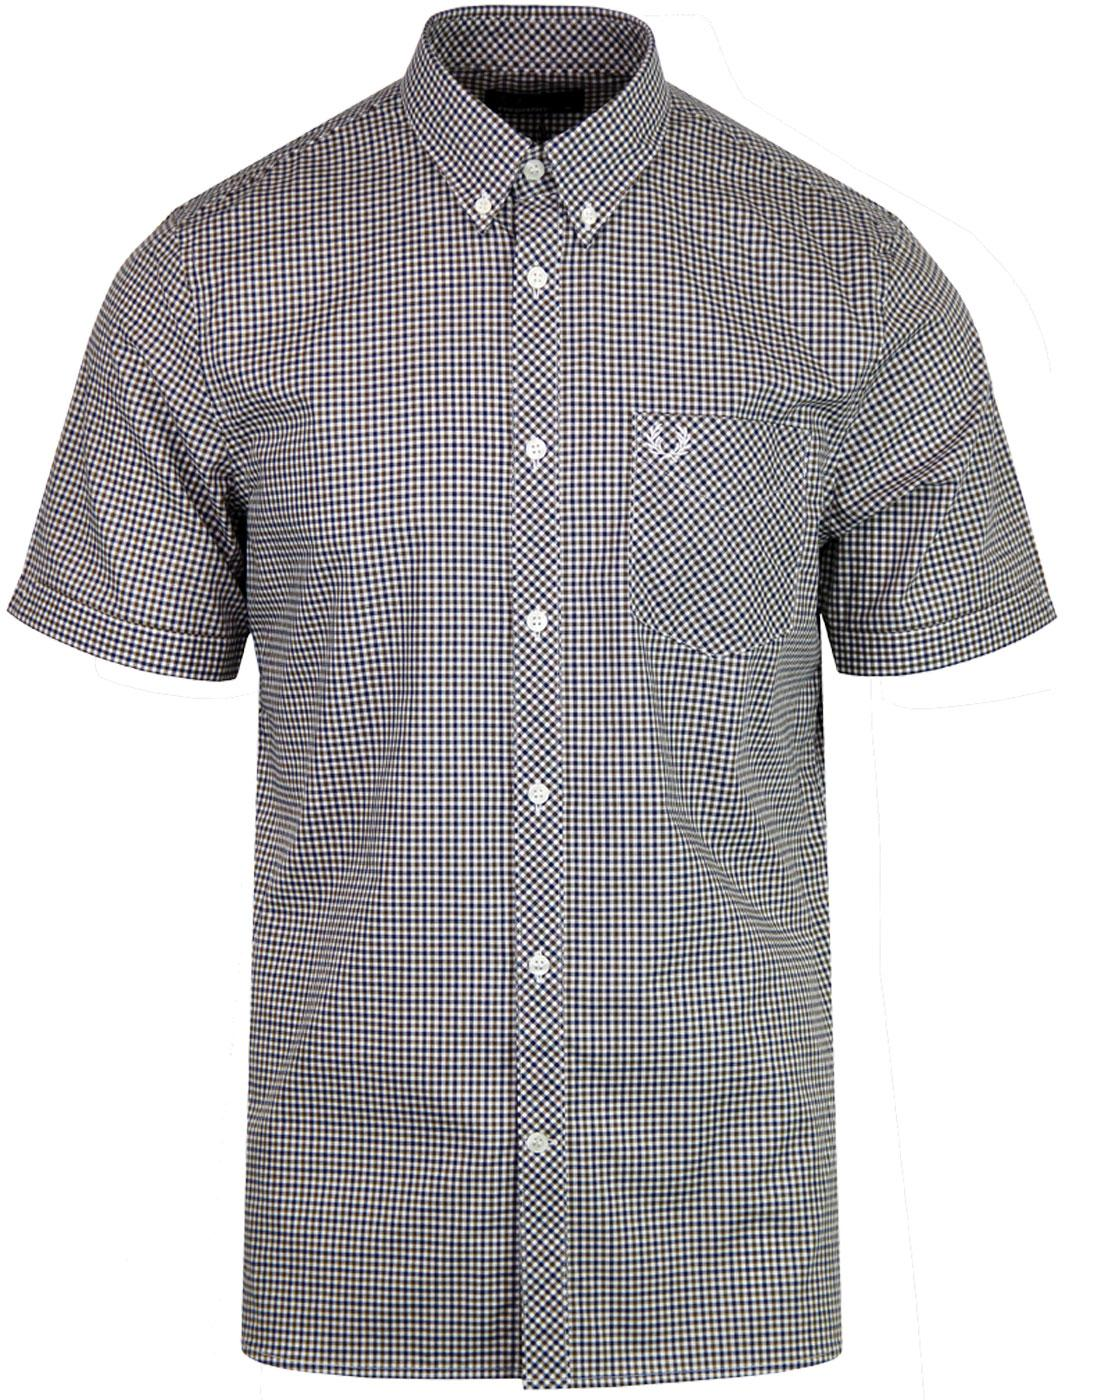 M3534 FRED PERRY 3-COLOUR GINGHAM SHIRT NETTLE